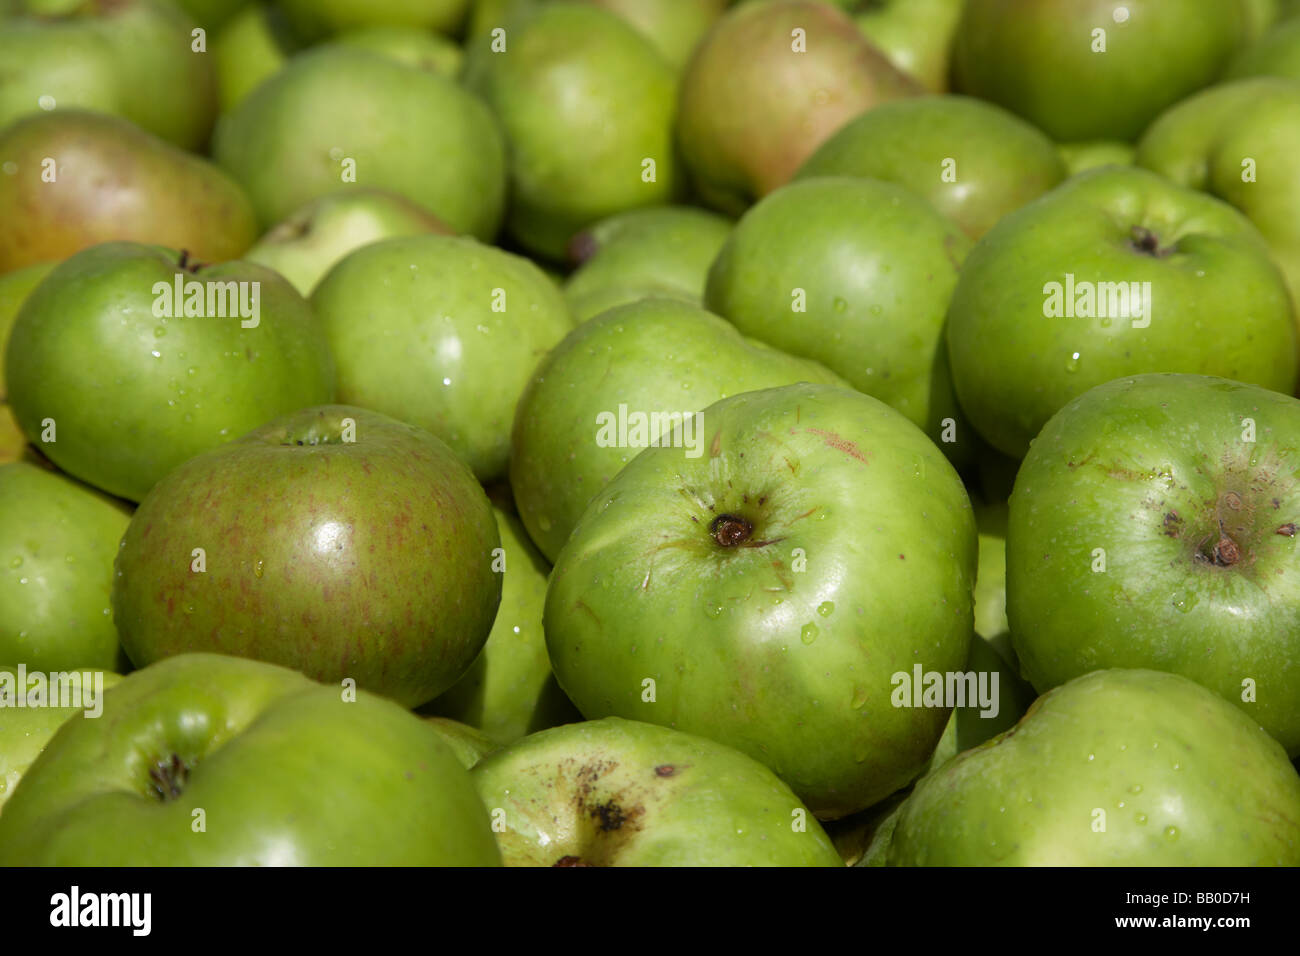 malus domestica Bramley Seedling apple crop of armagh bramley apples - Stock Image